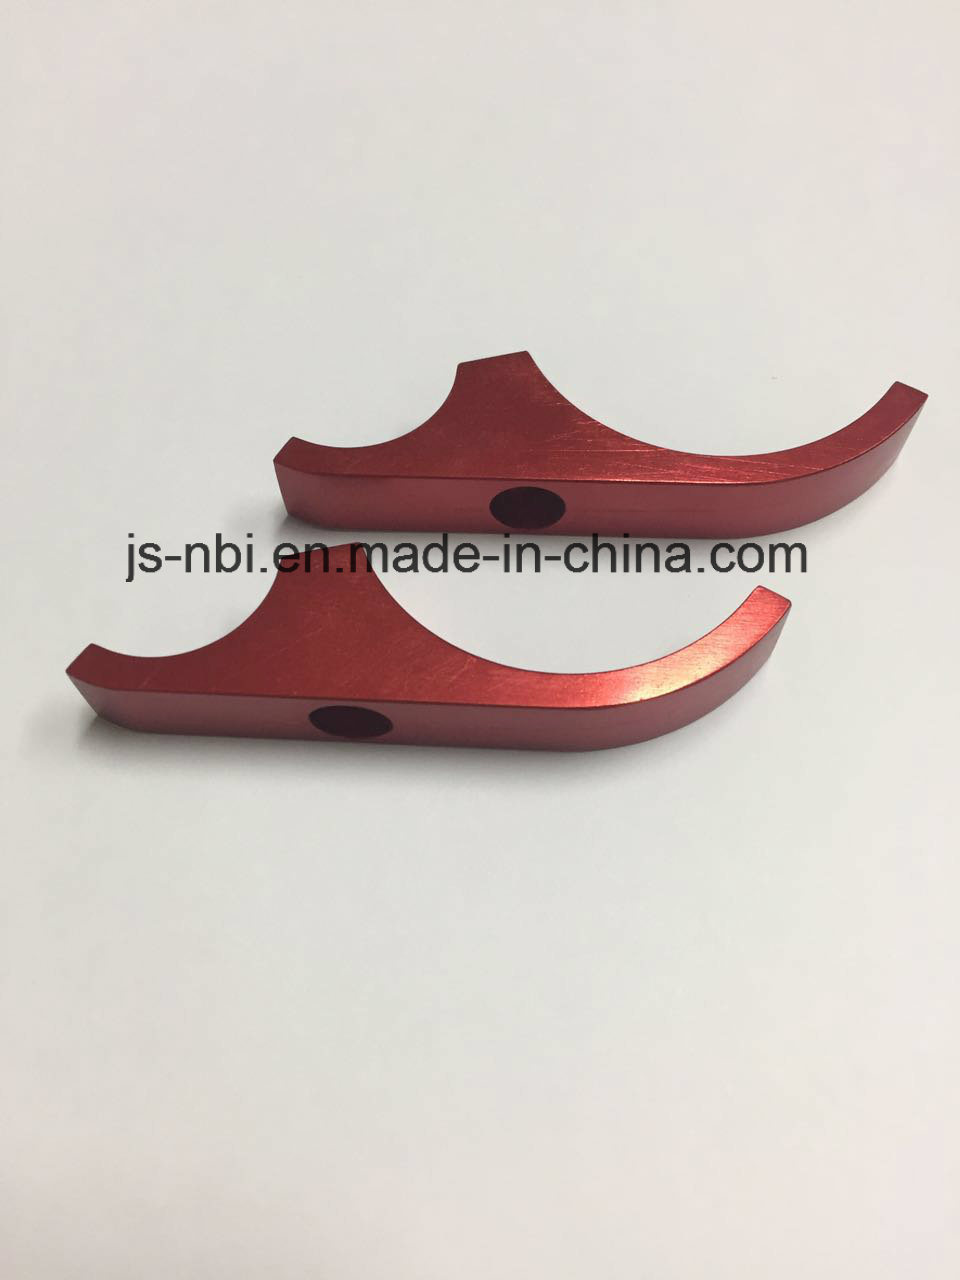 CNC Machining Aluminum Part for Clamps with Red Anodized